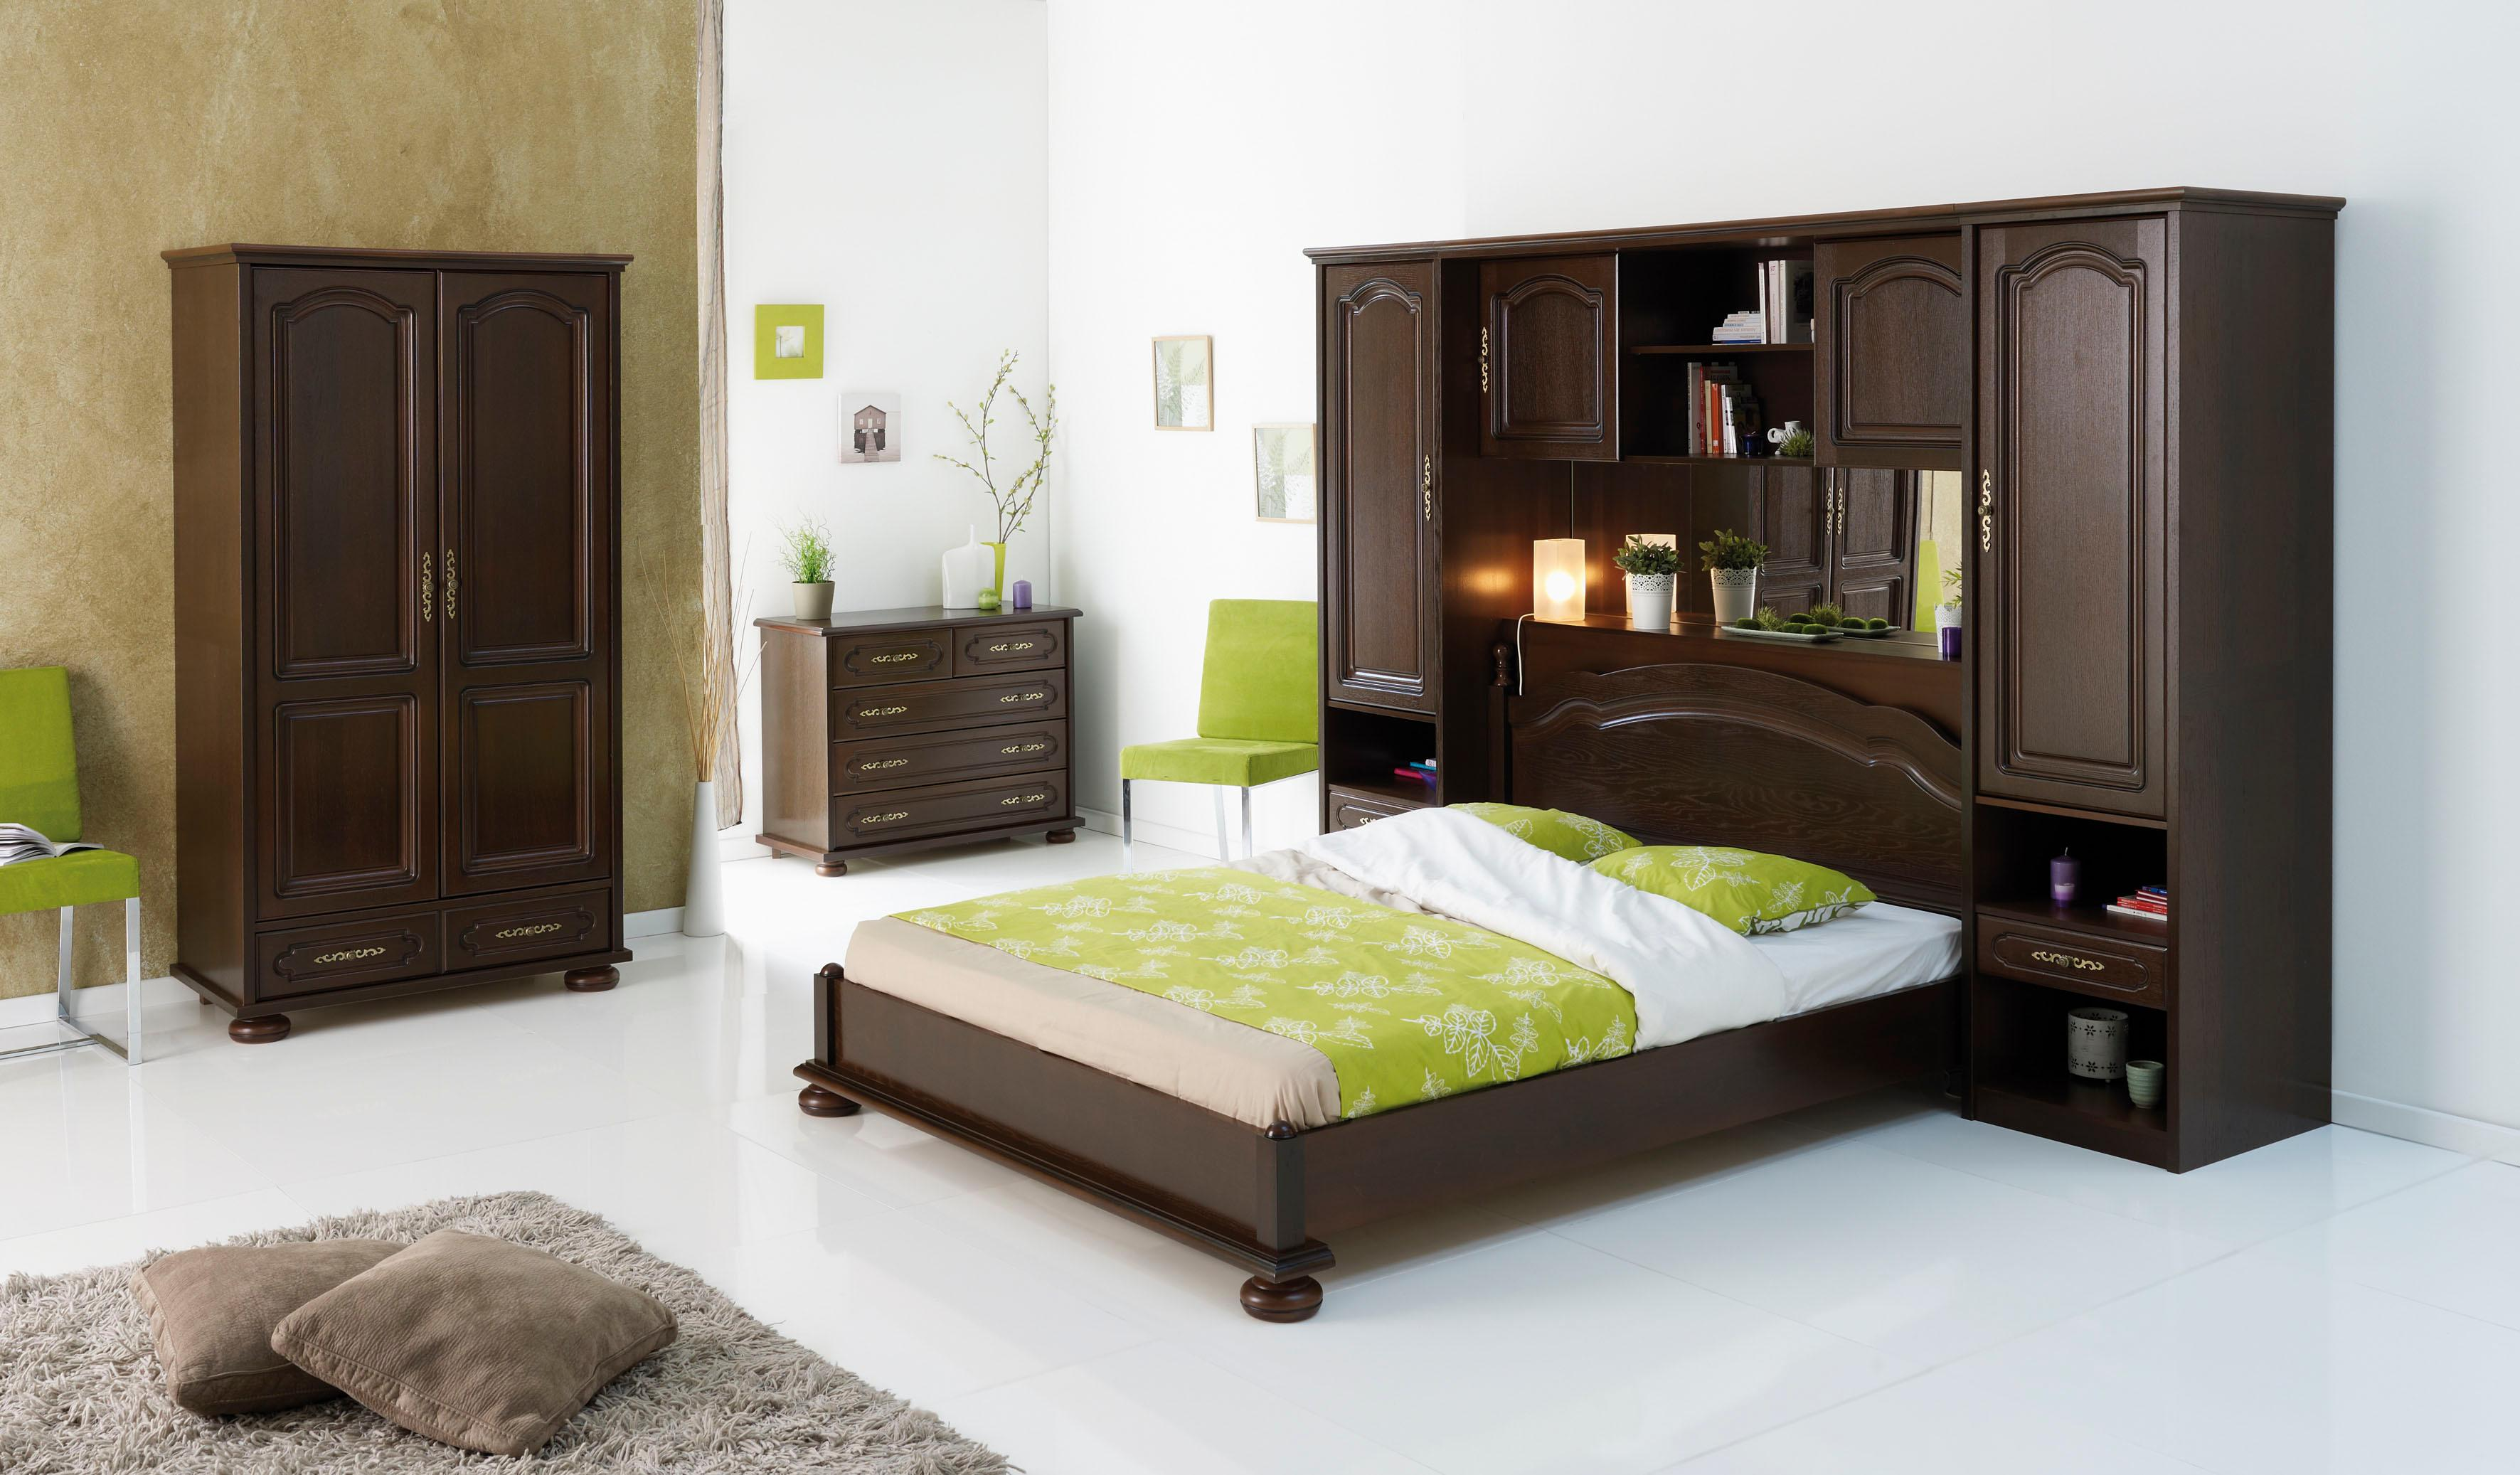 Premium collection by Home affaire Bettanlage Berry